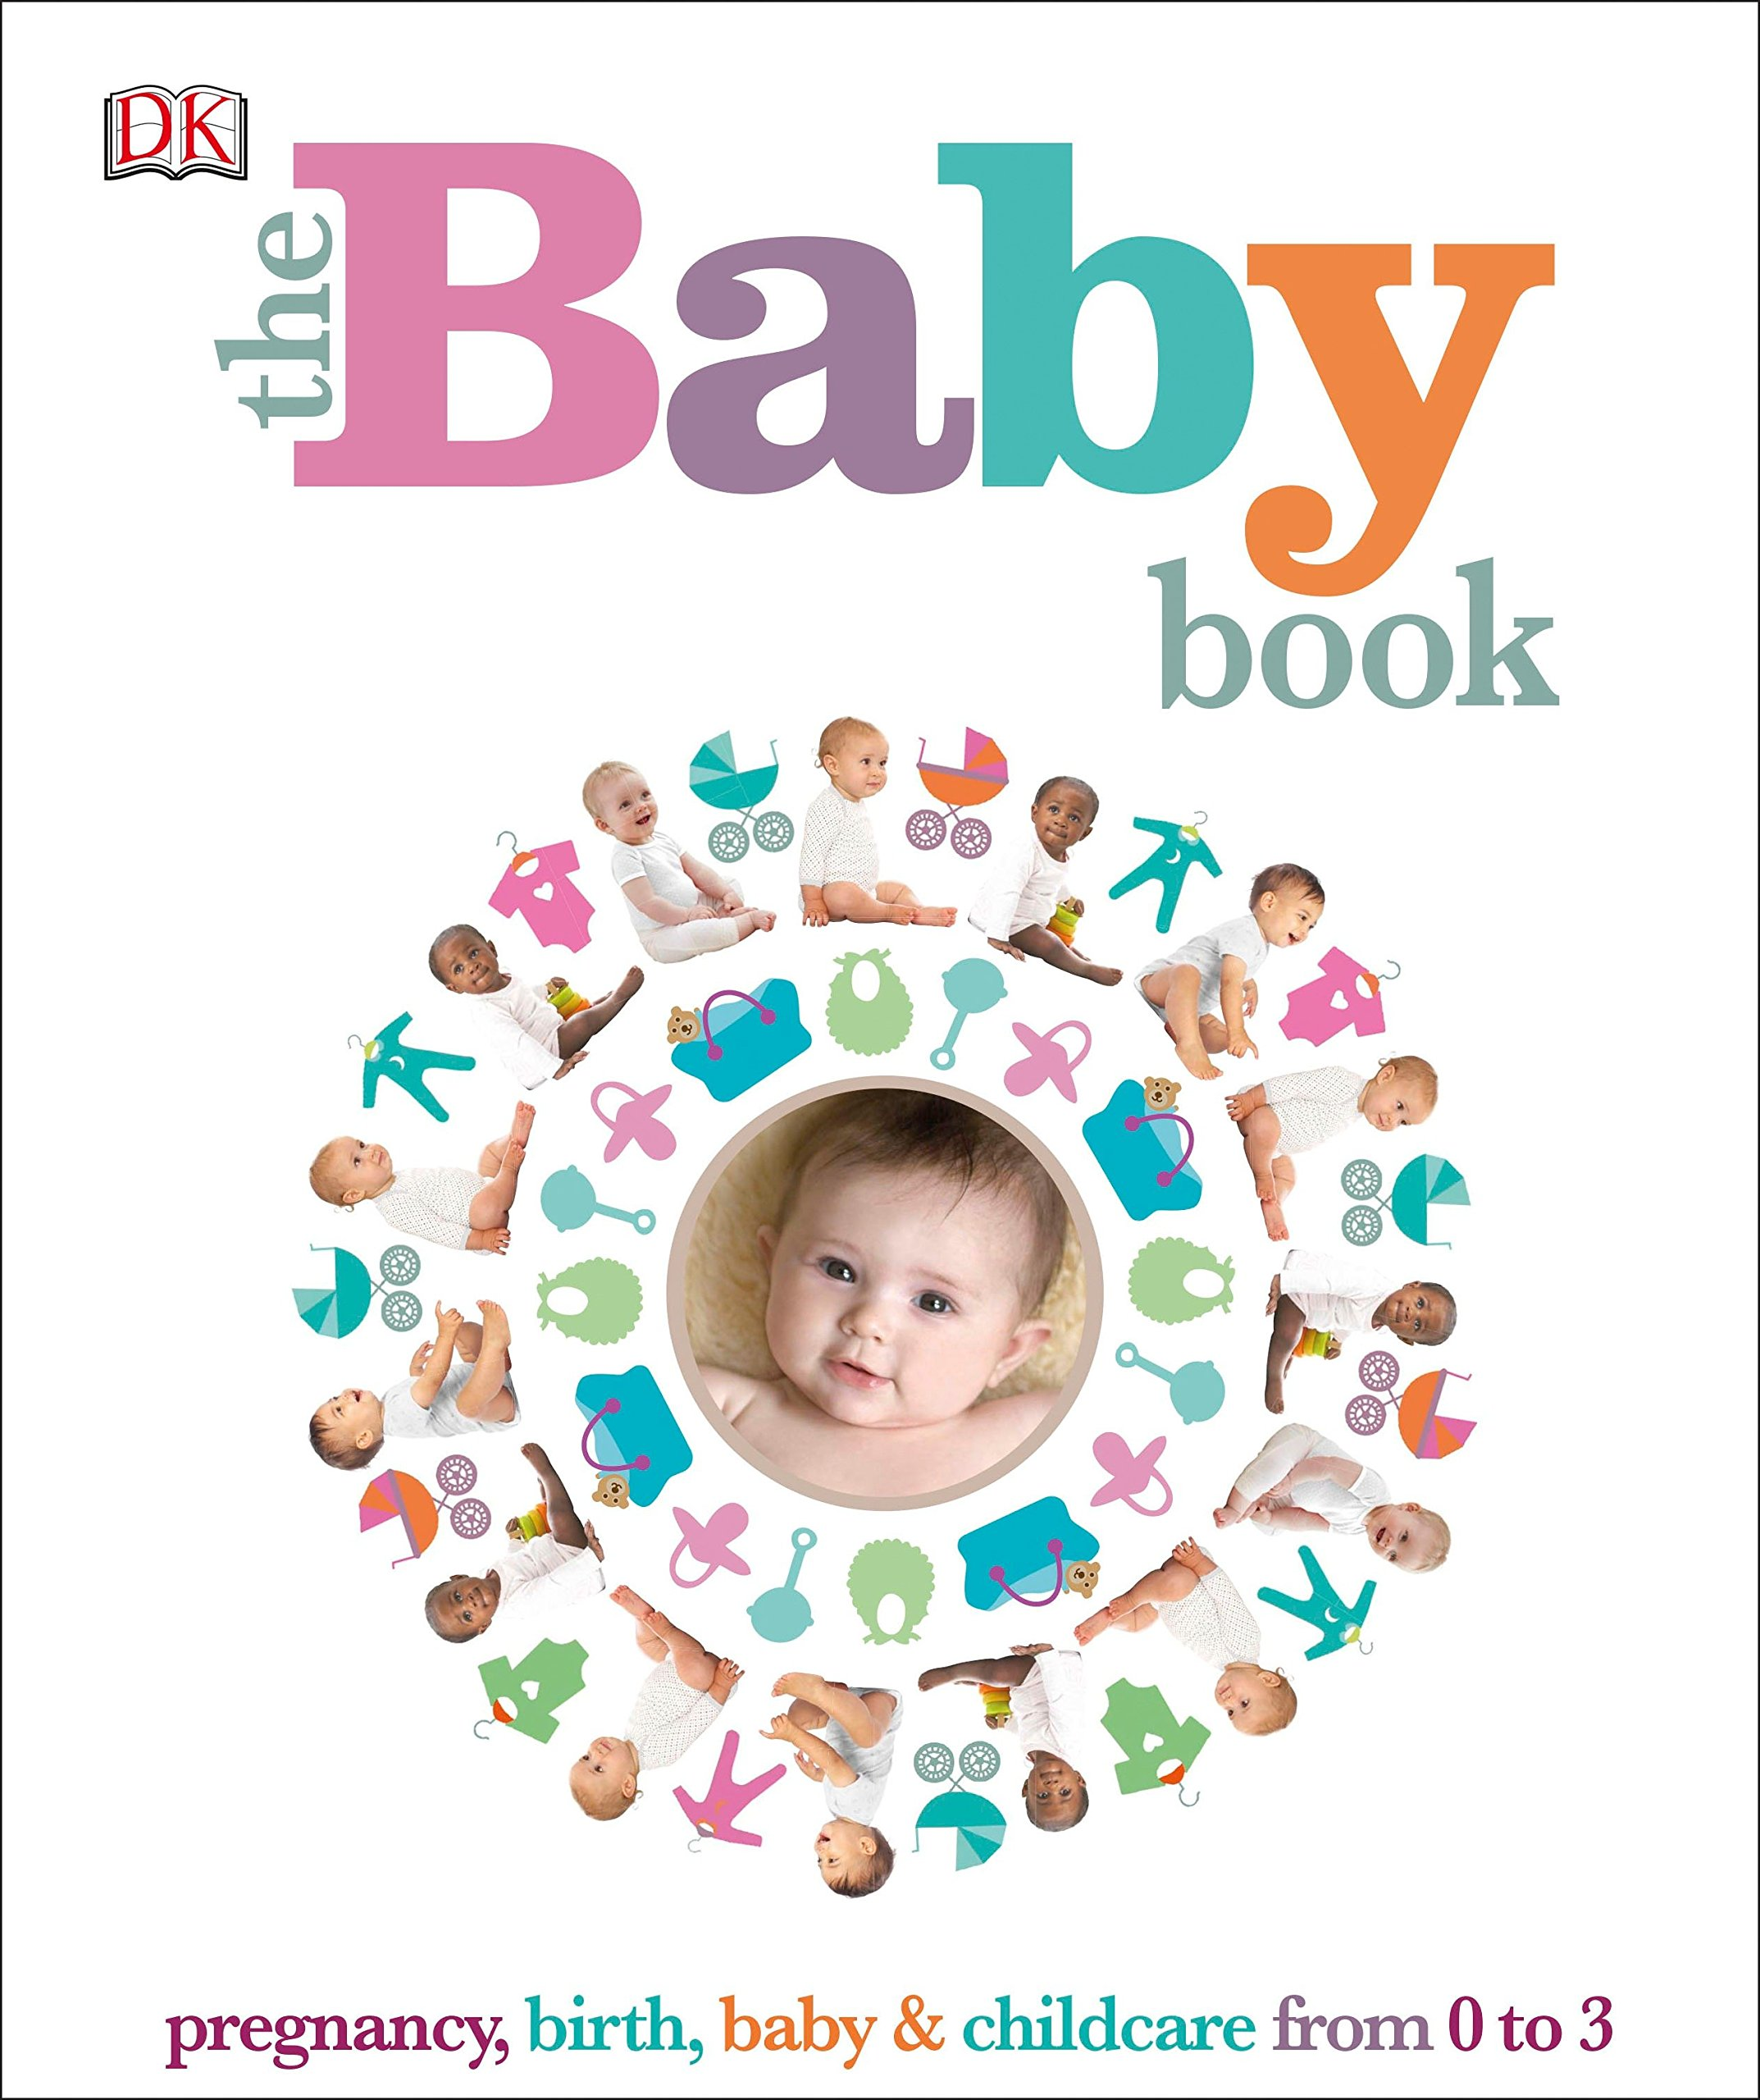 The Baby Book: Pregnancy, birth, baby & childcare from 0 to 3 pdf